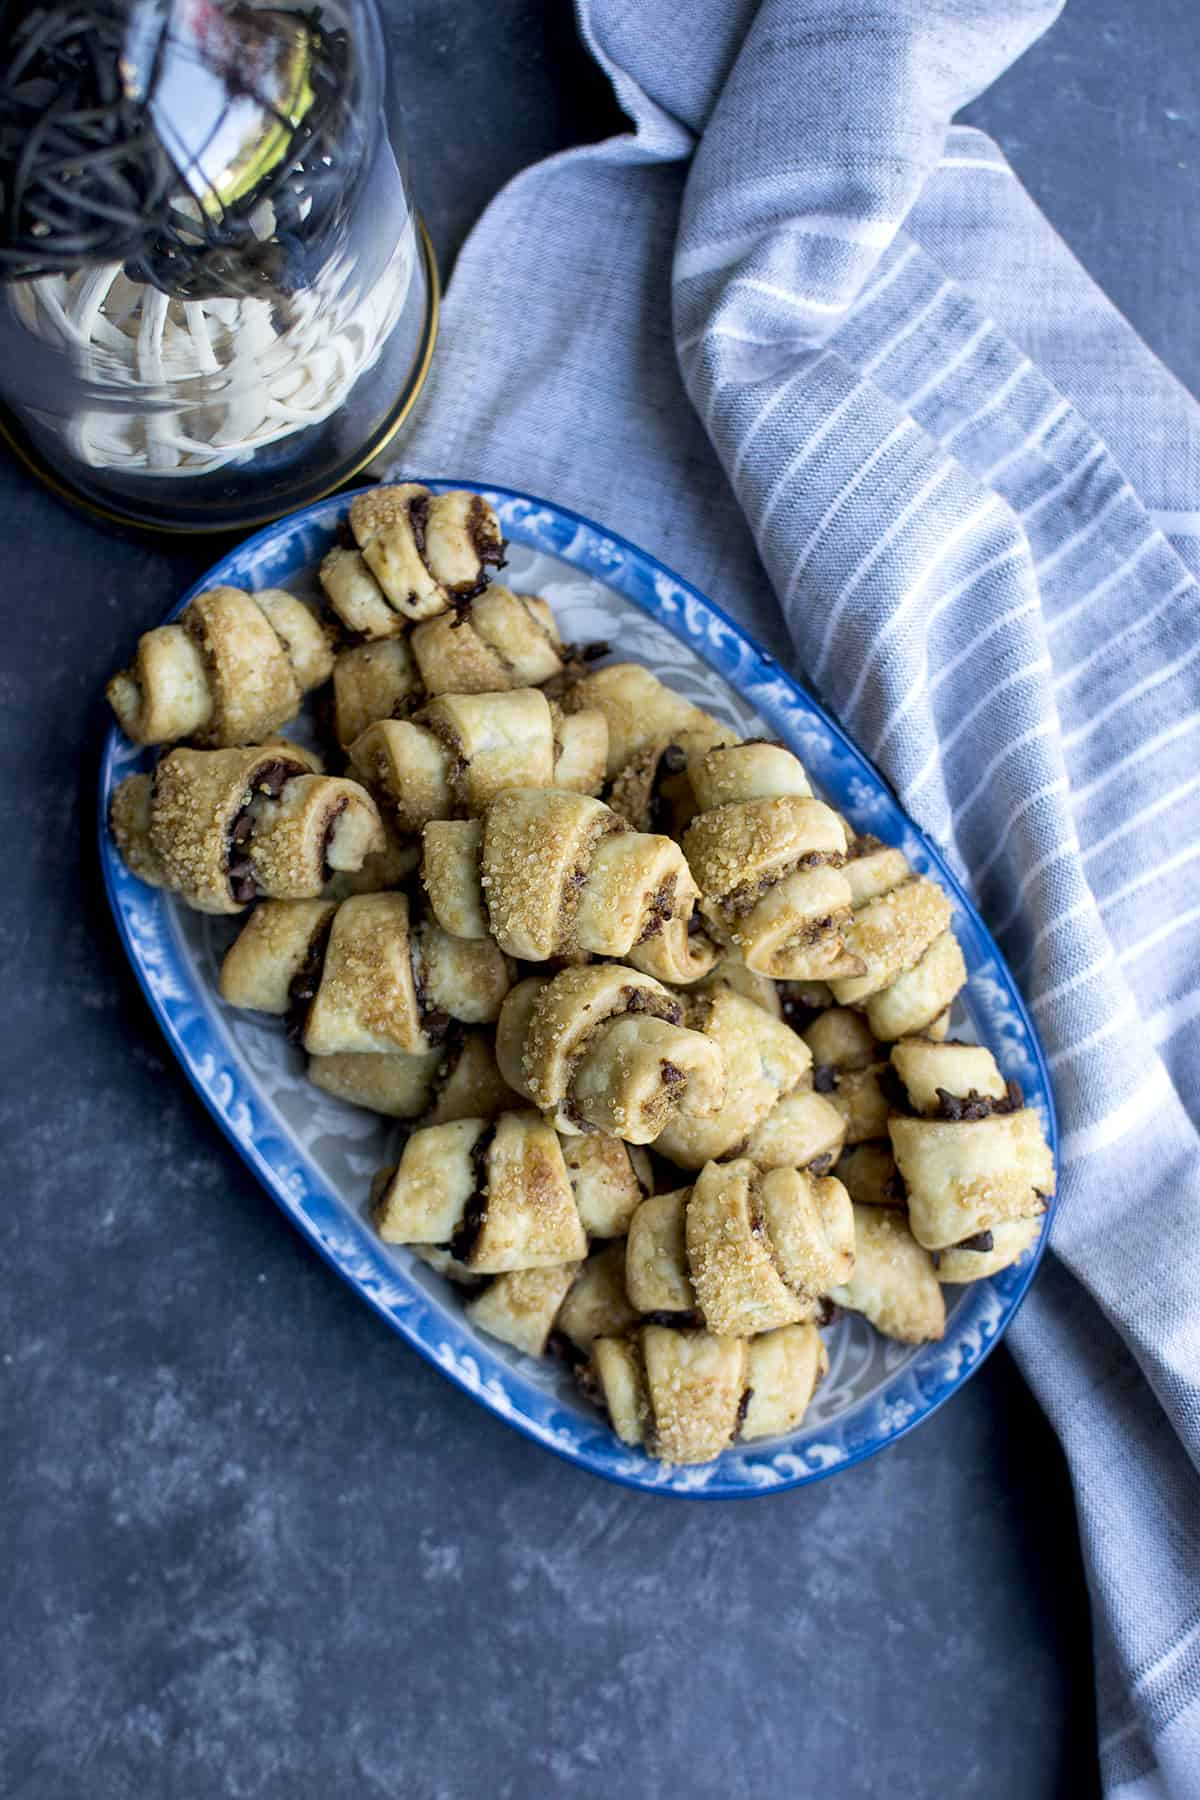 Blue printed tray with baked rugelach